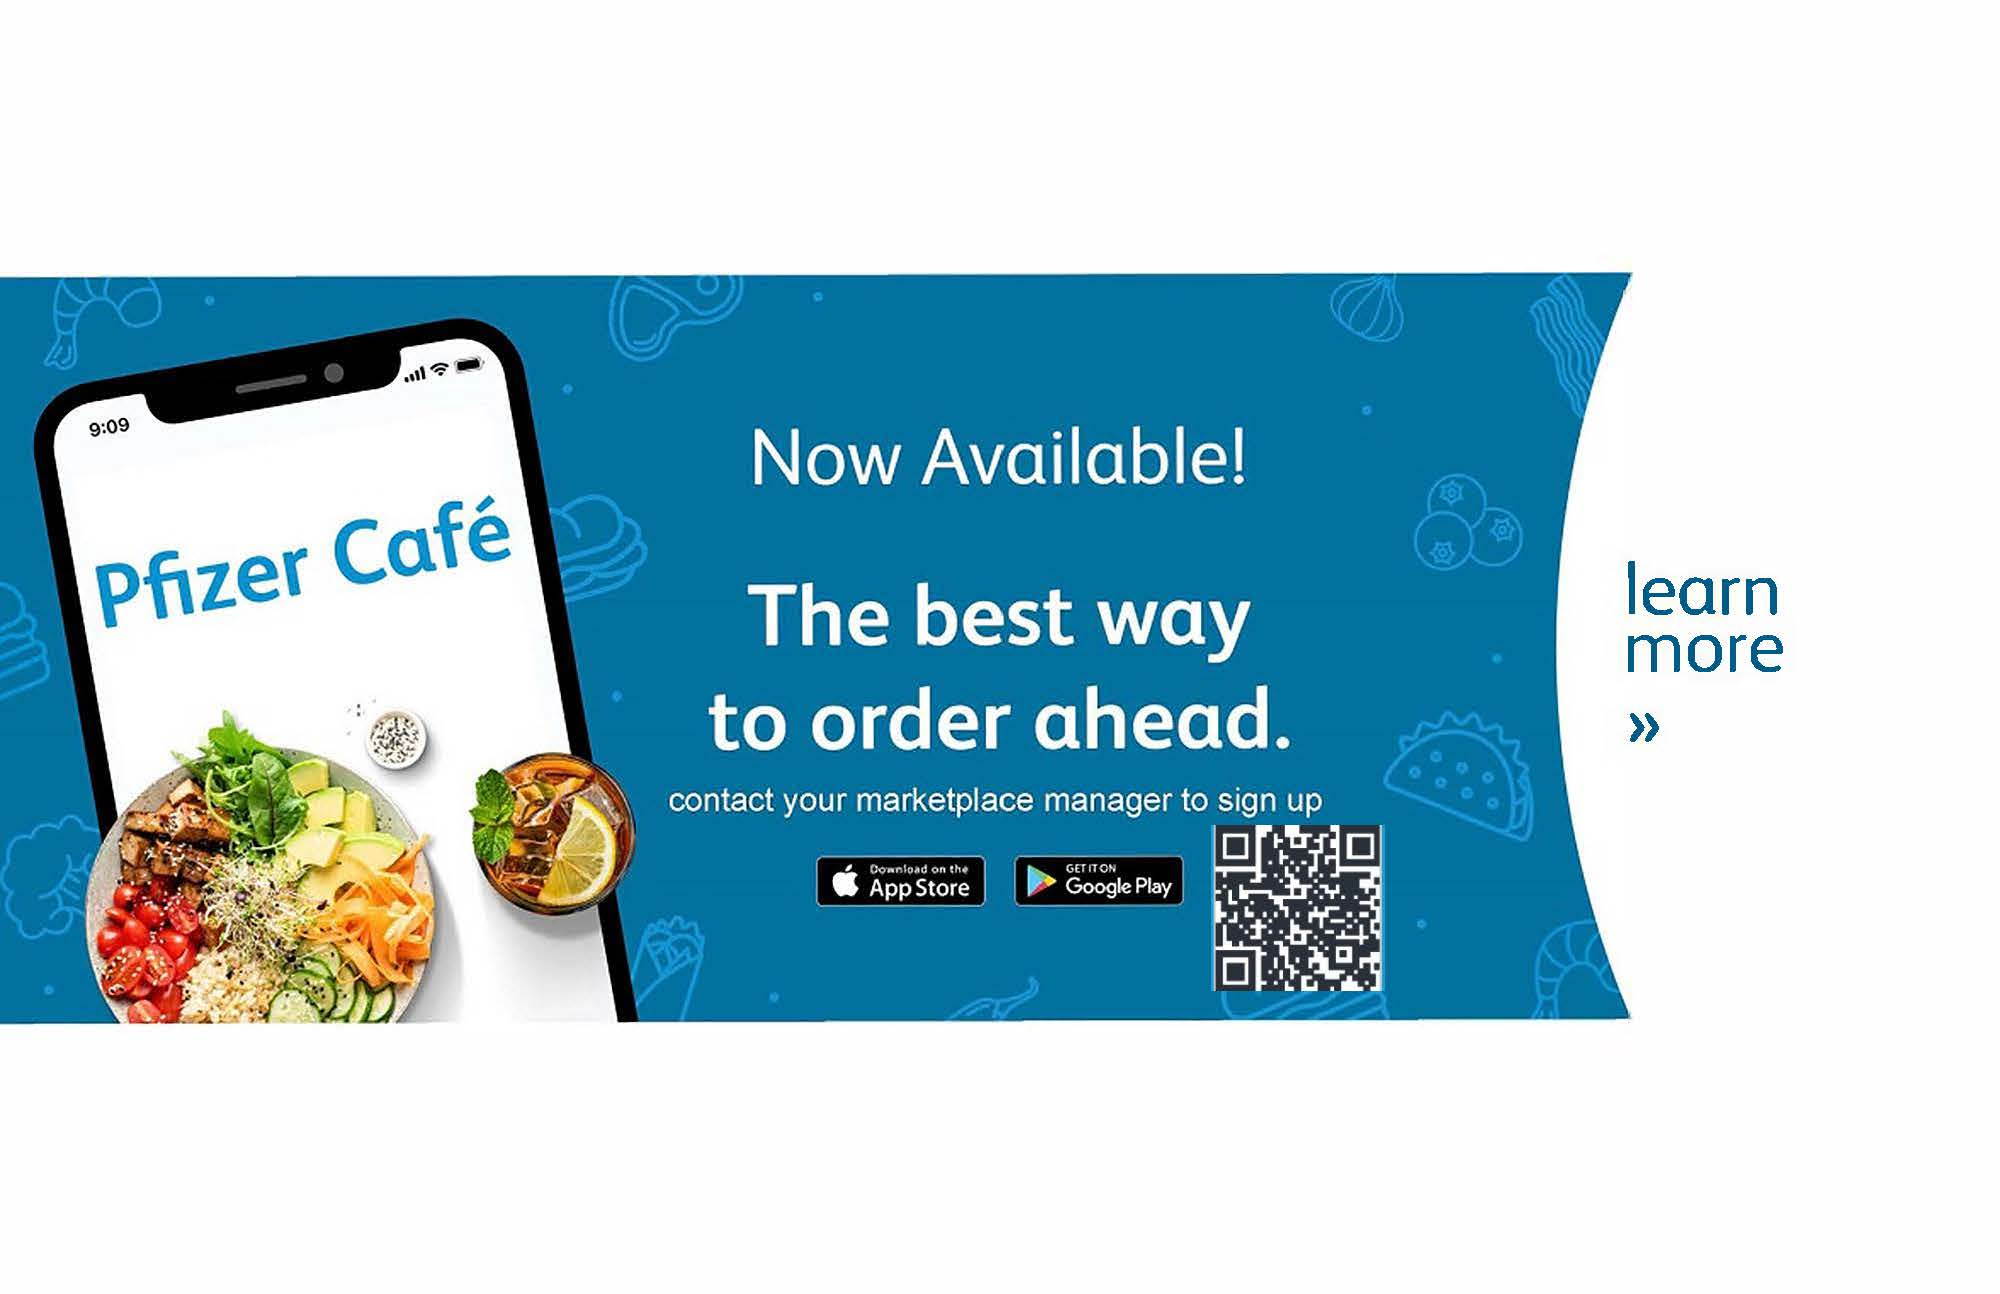 Now available Banner